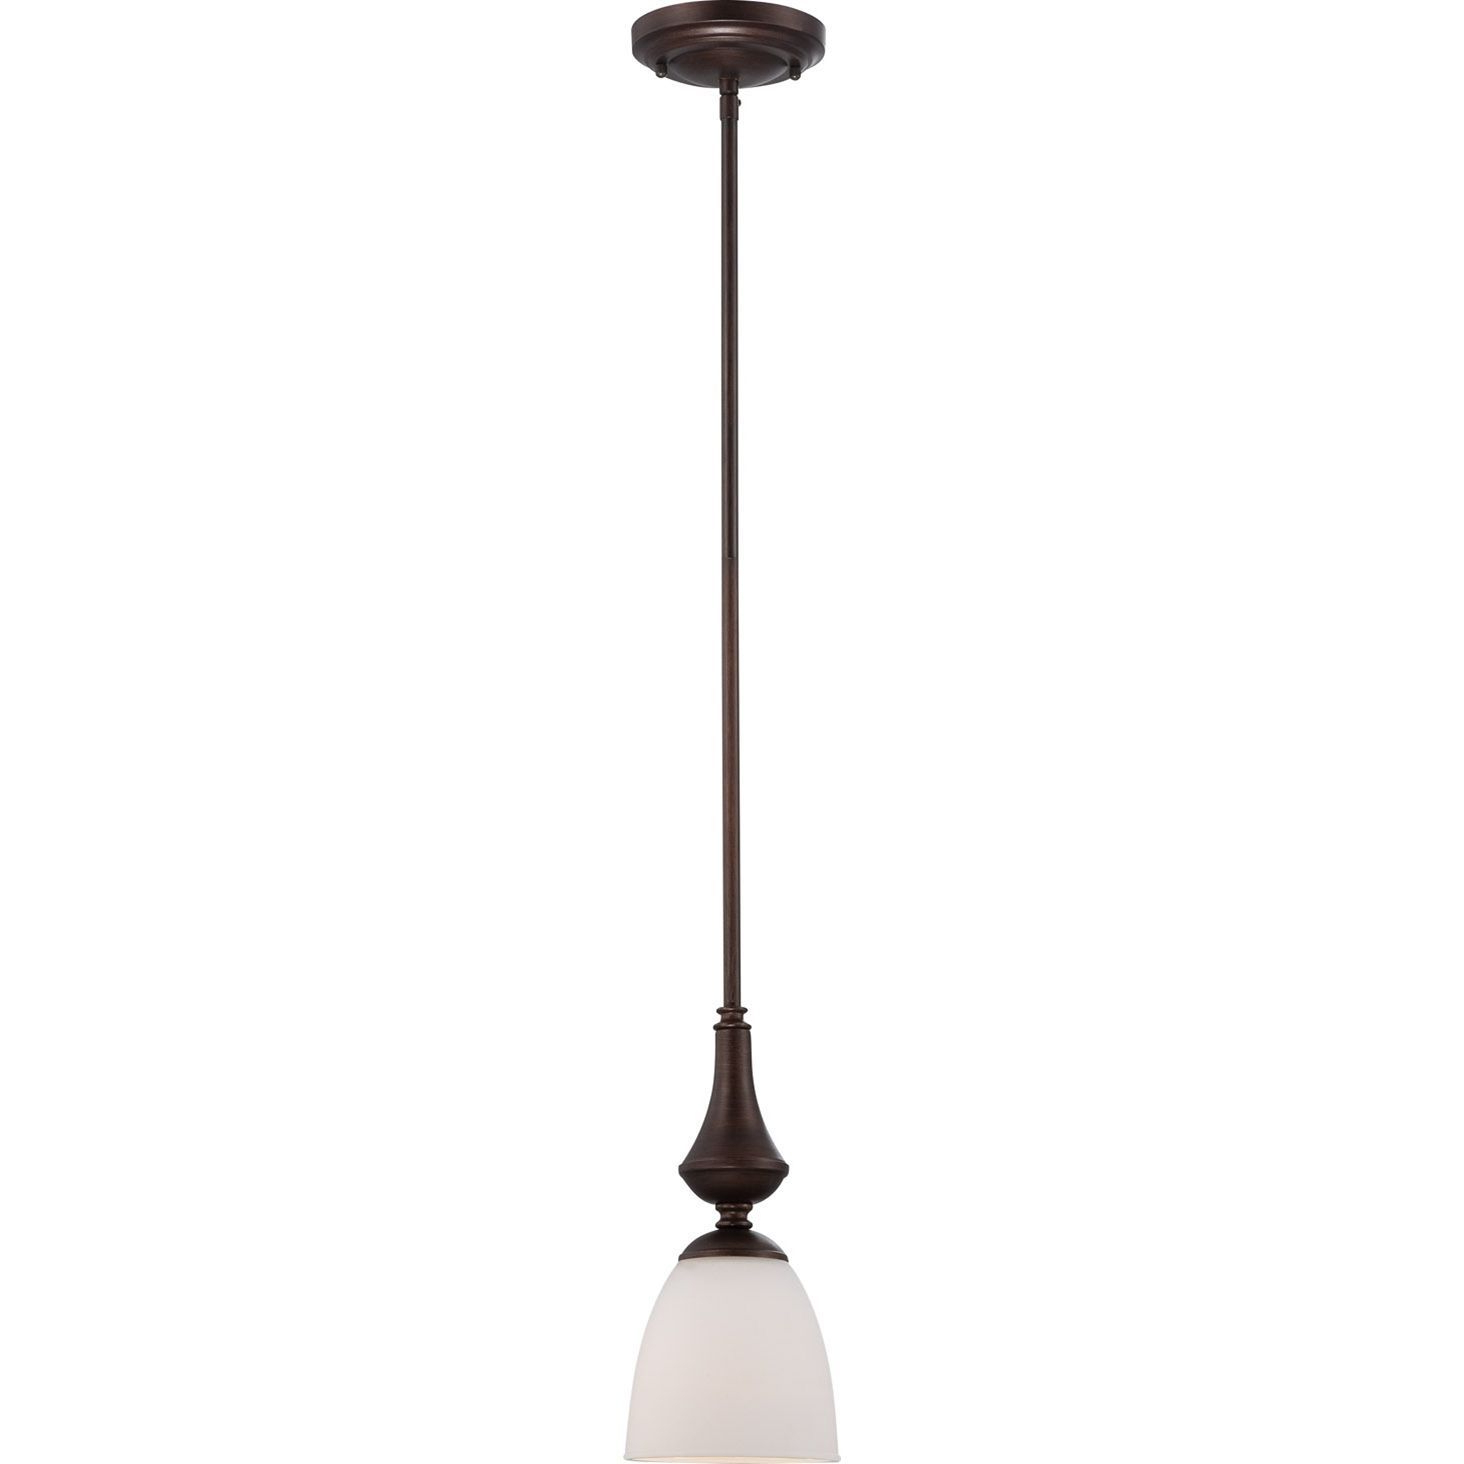 Nuvo Patton 1 Light Prairie Bronze Mini Pendant In 2019 Throughout Most Current Grullon Scroll 1 Light Single Bell Pendants (View 15 of 20)